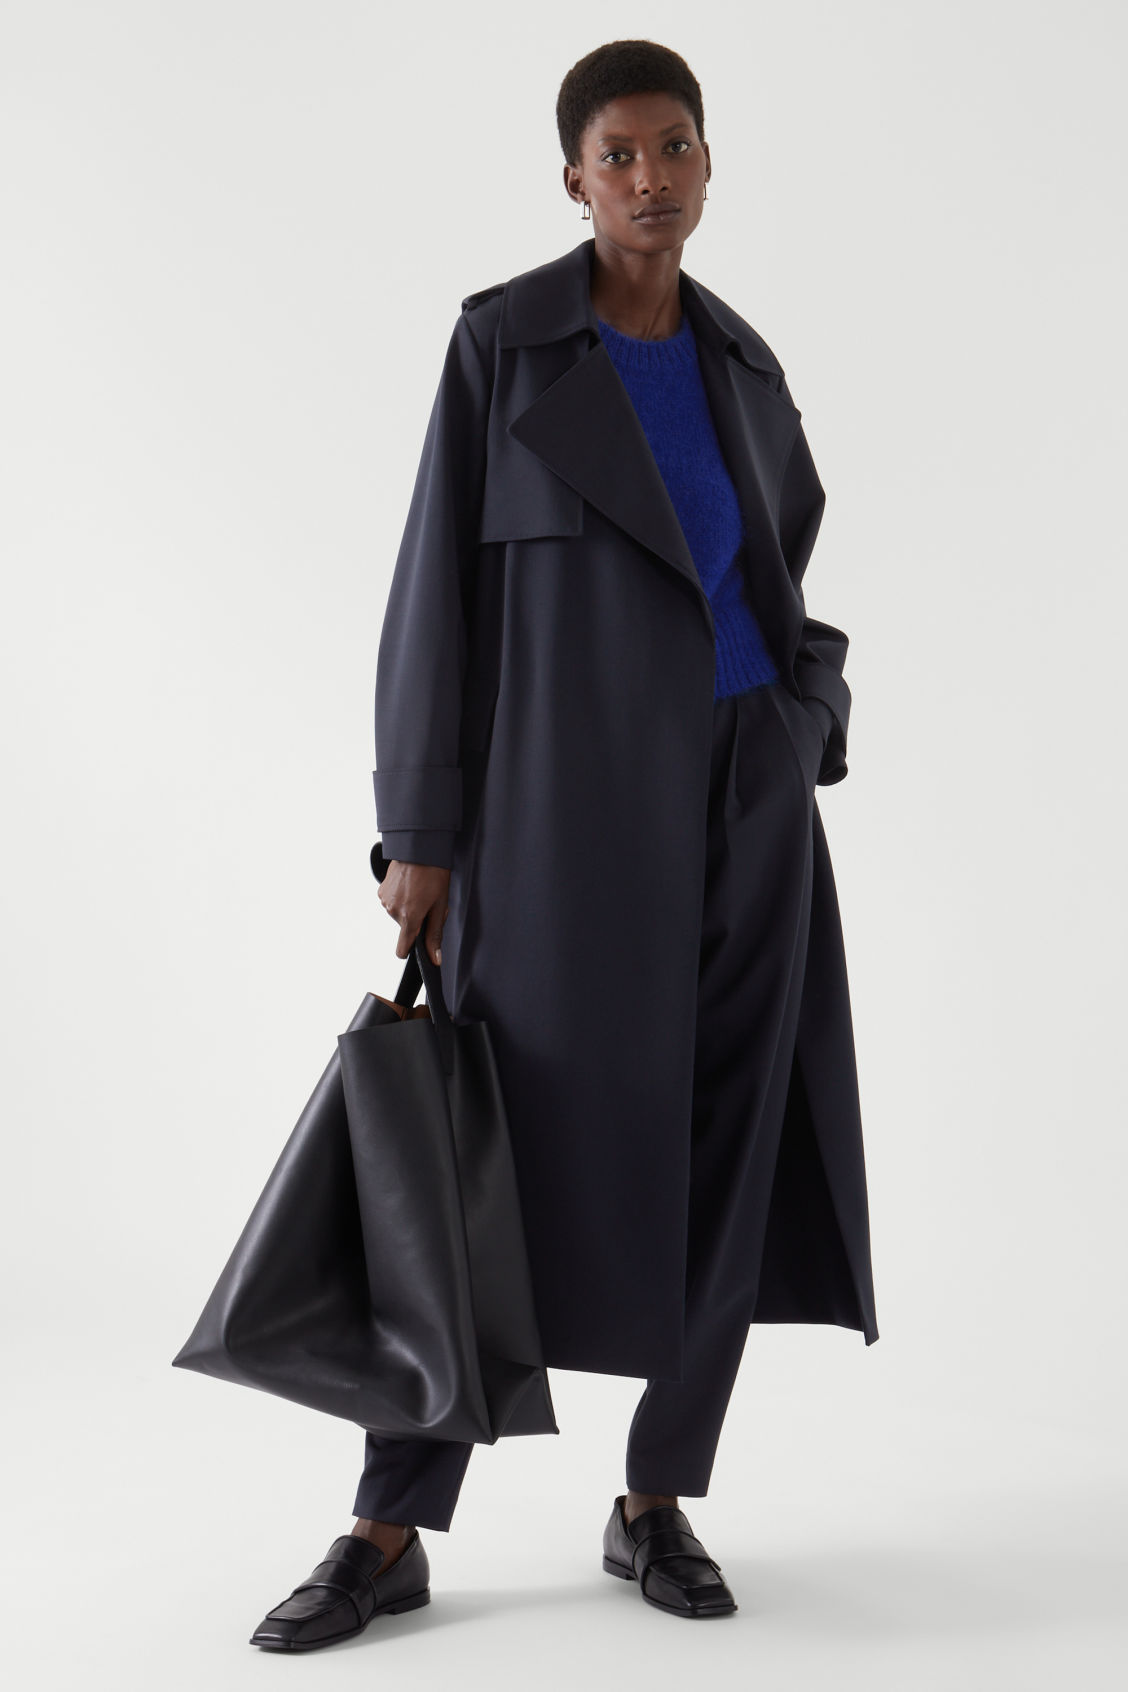 COS DOUBLE-BREASTED TRENCH COAT,navy